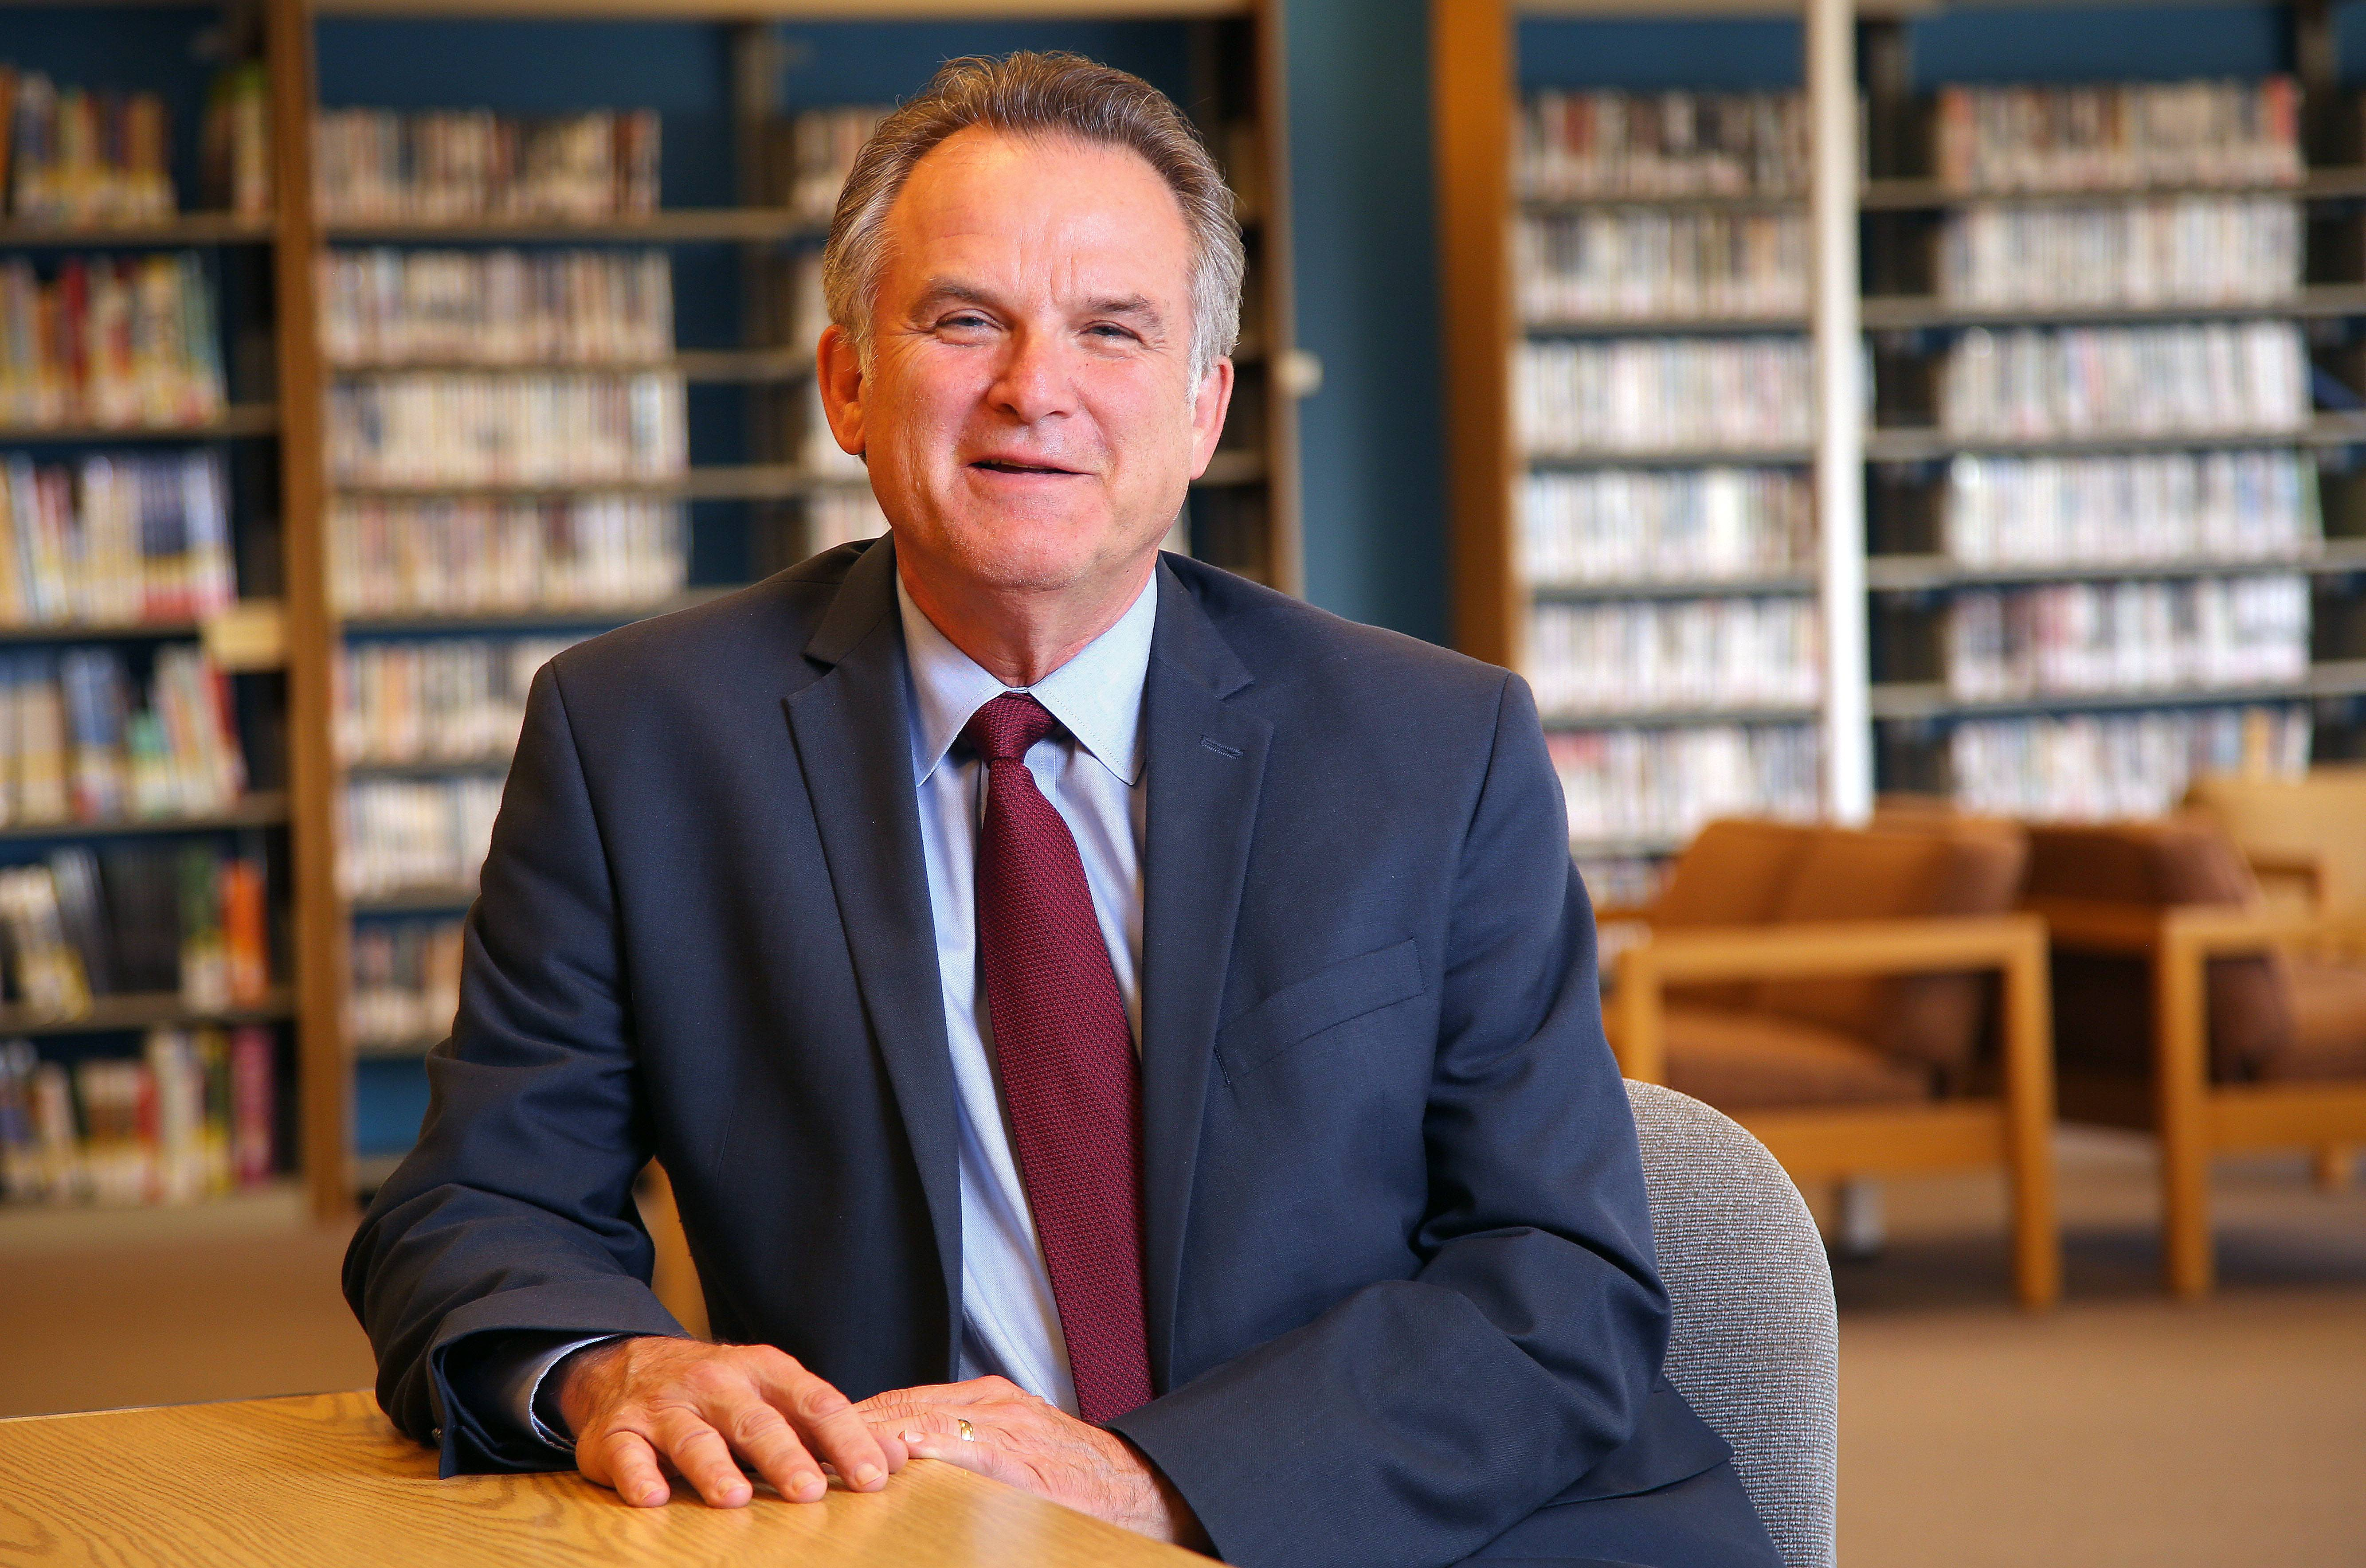 Jerry Weber is leaving the College of Lake County on Friday after an eight-year tenure as the school's president. The school has become a national leader in sustainable practices and facilities during his time as president.